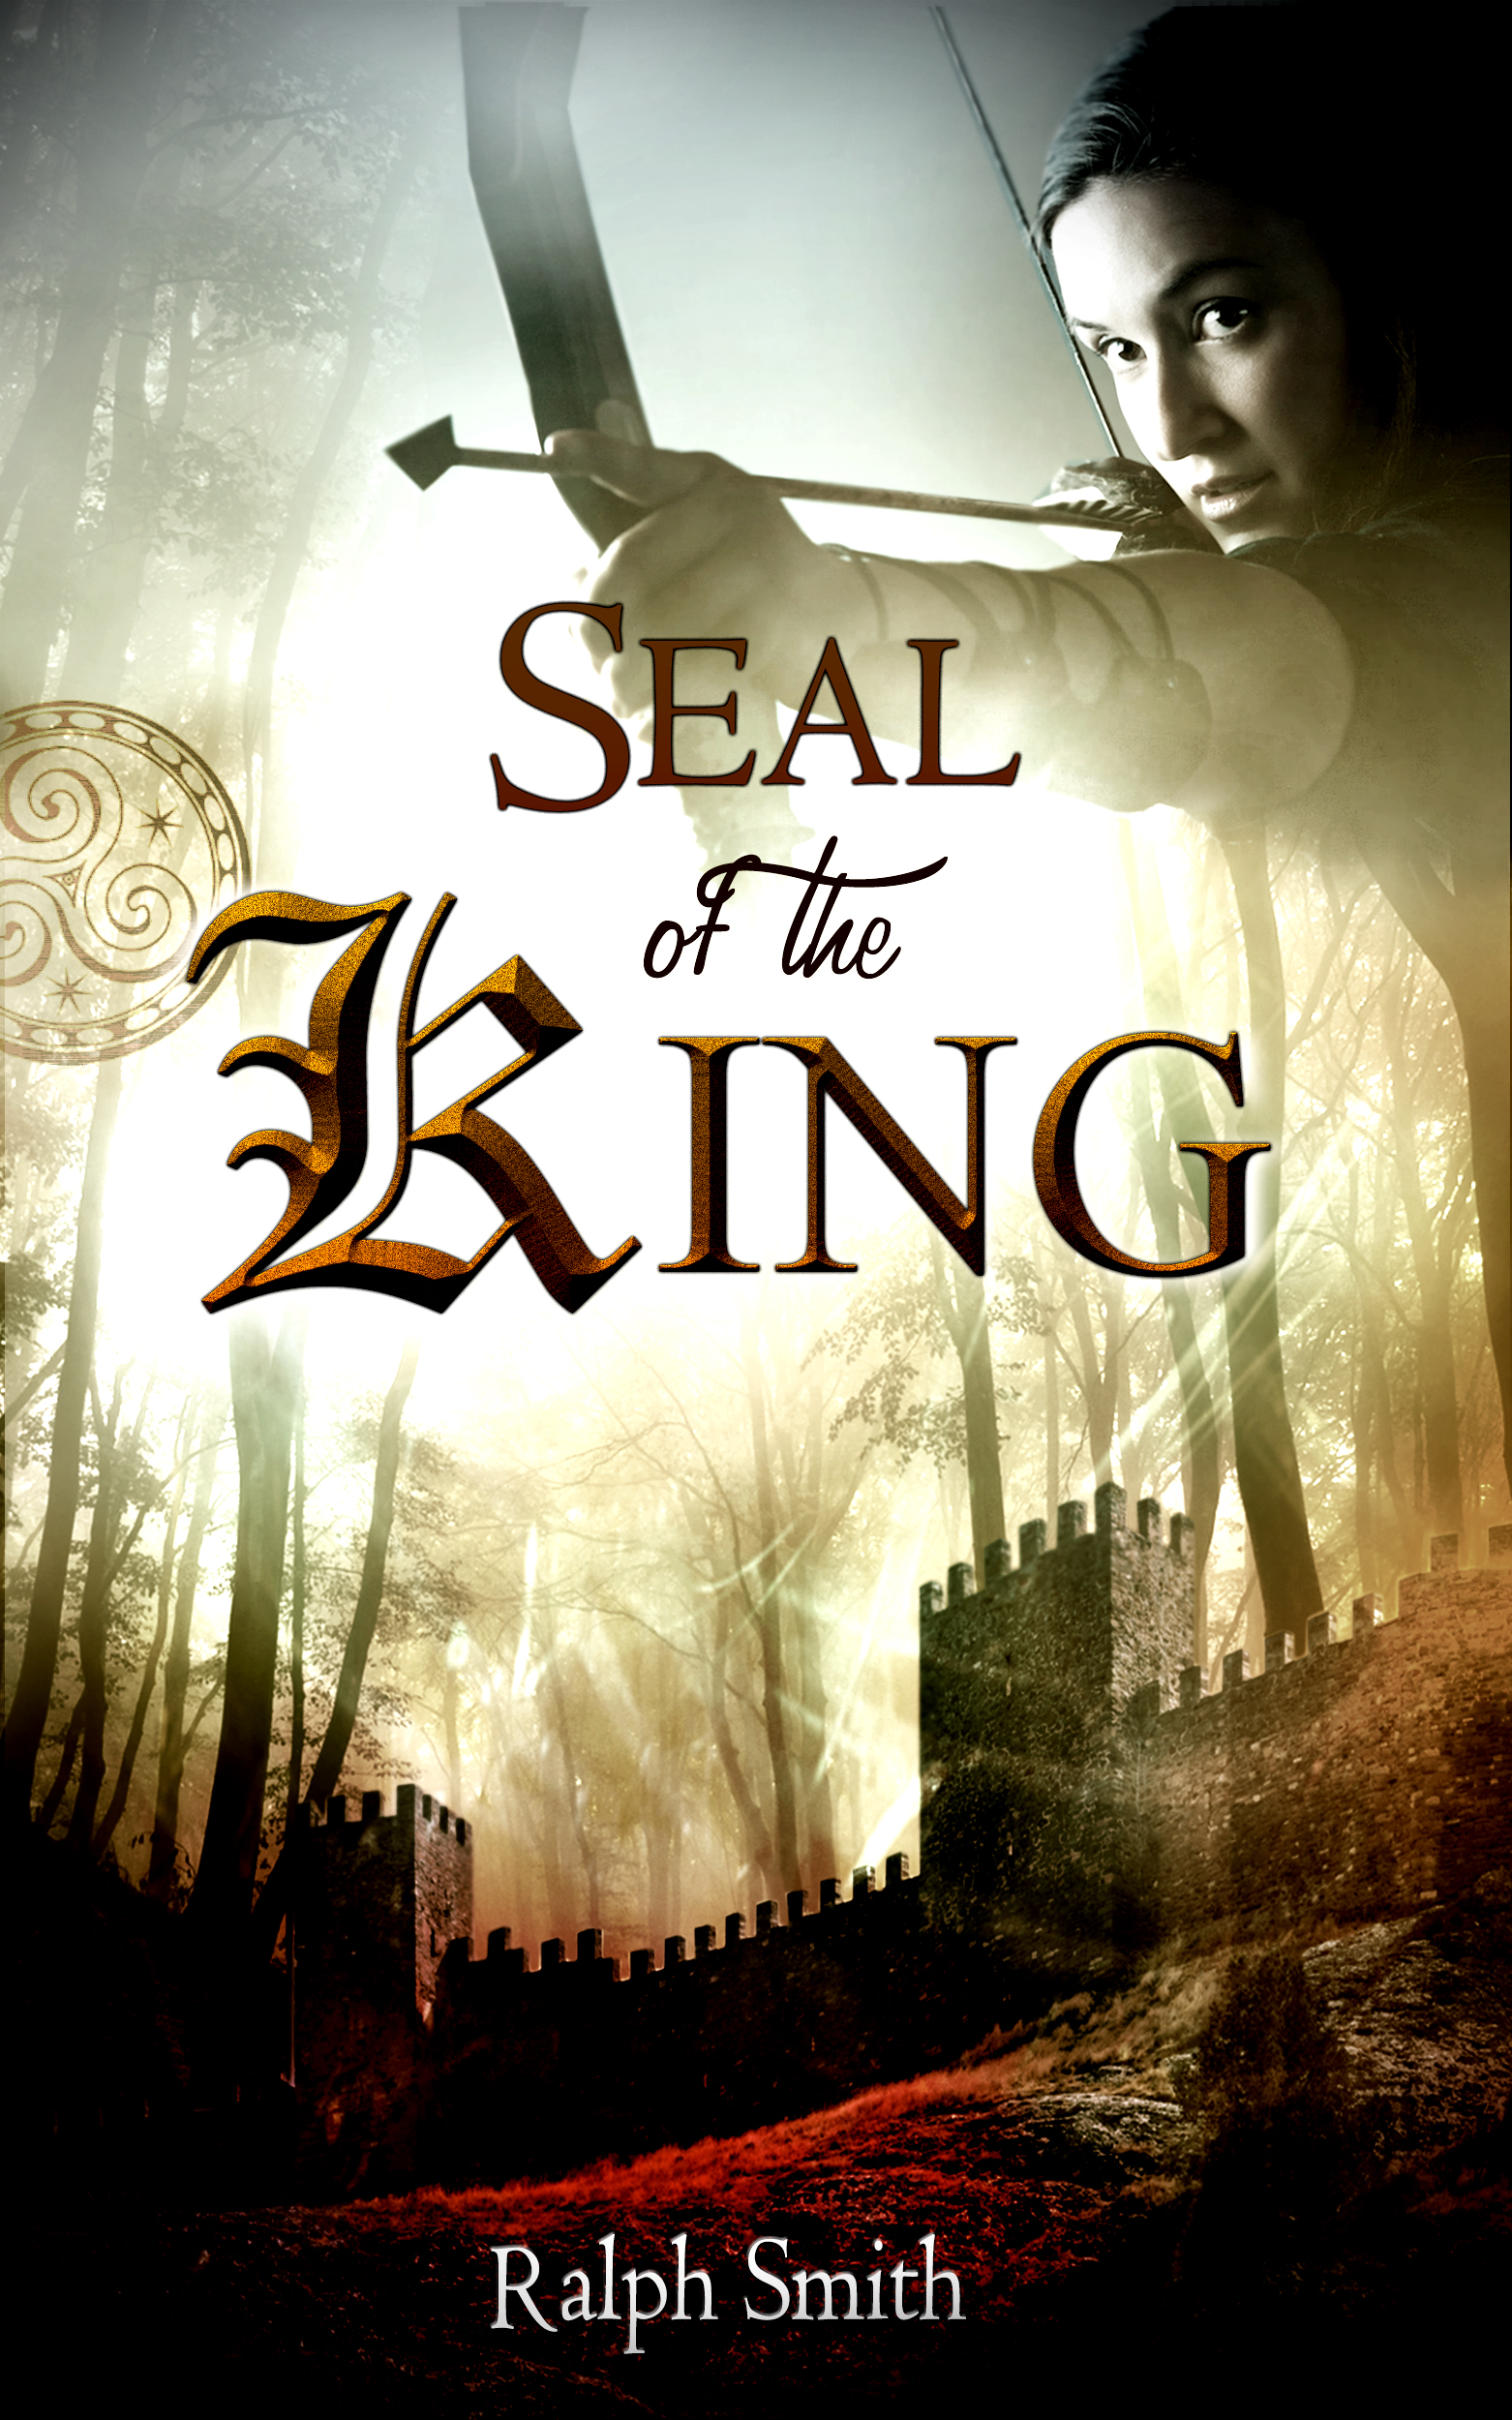 5.0 out of 5 stars SEAL OF THE KING